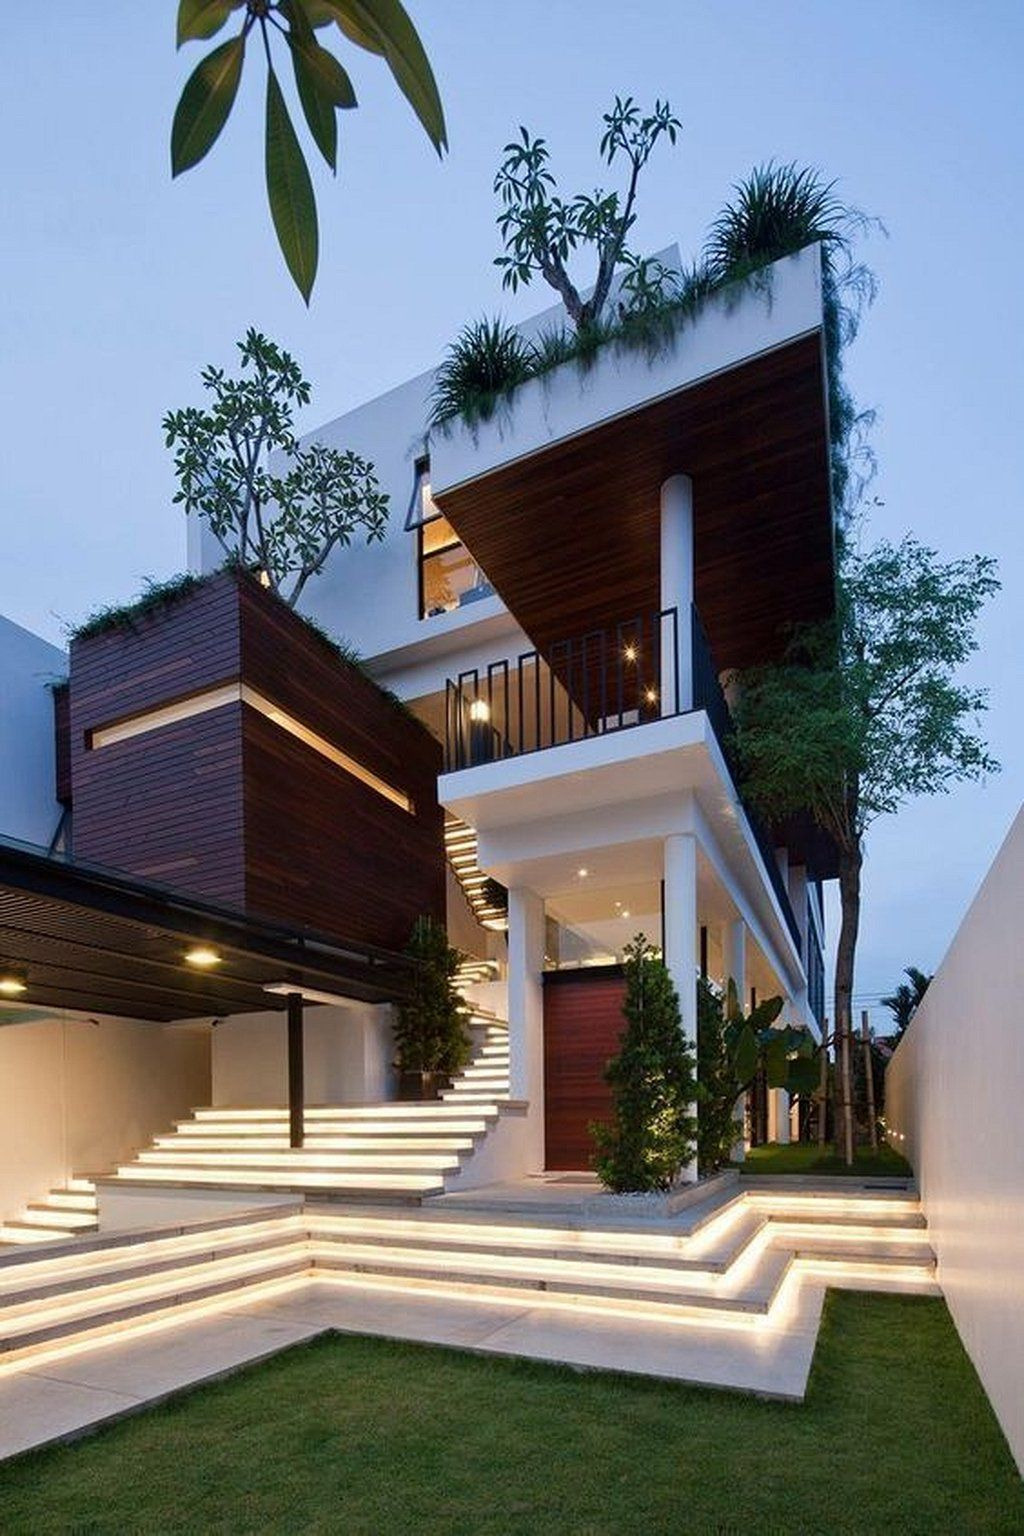 Best House Designs In the World Best Of 21 the Most Unique Modern Home Design In the World [new